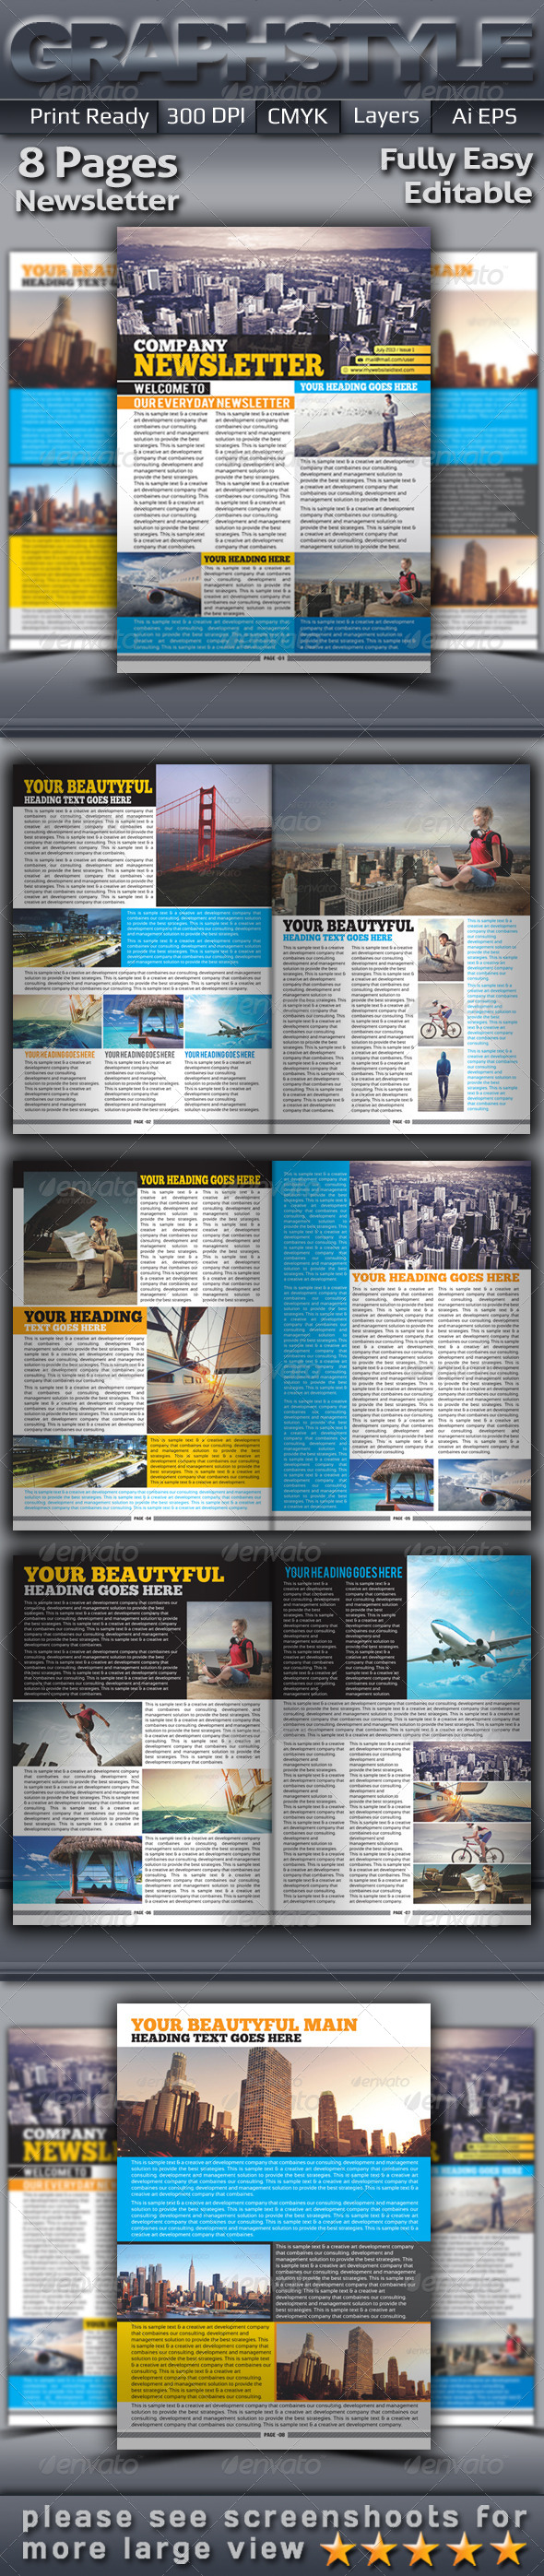 GraphicRiver Company Newsletter 5218813